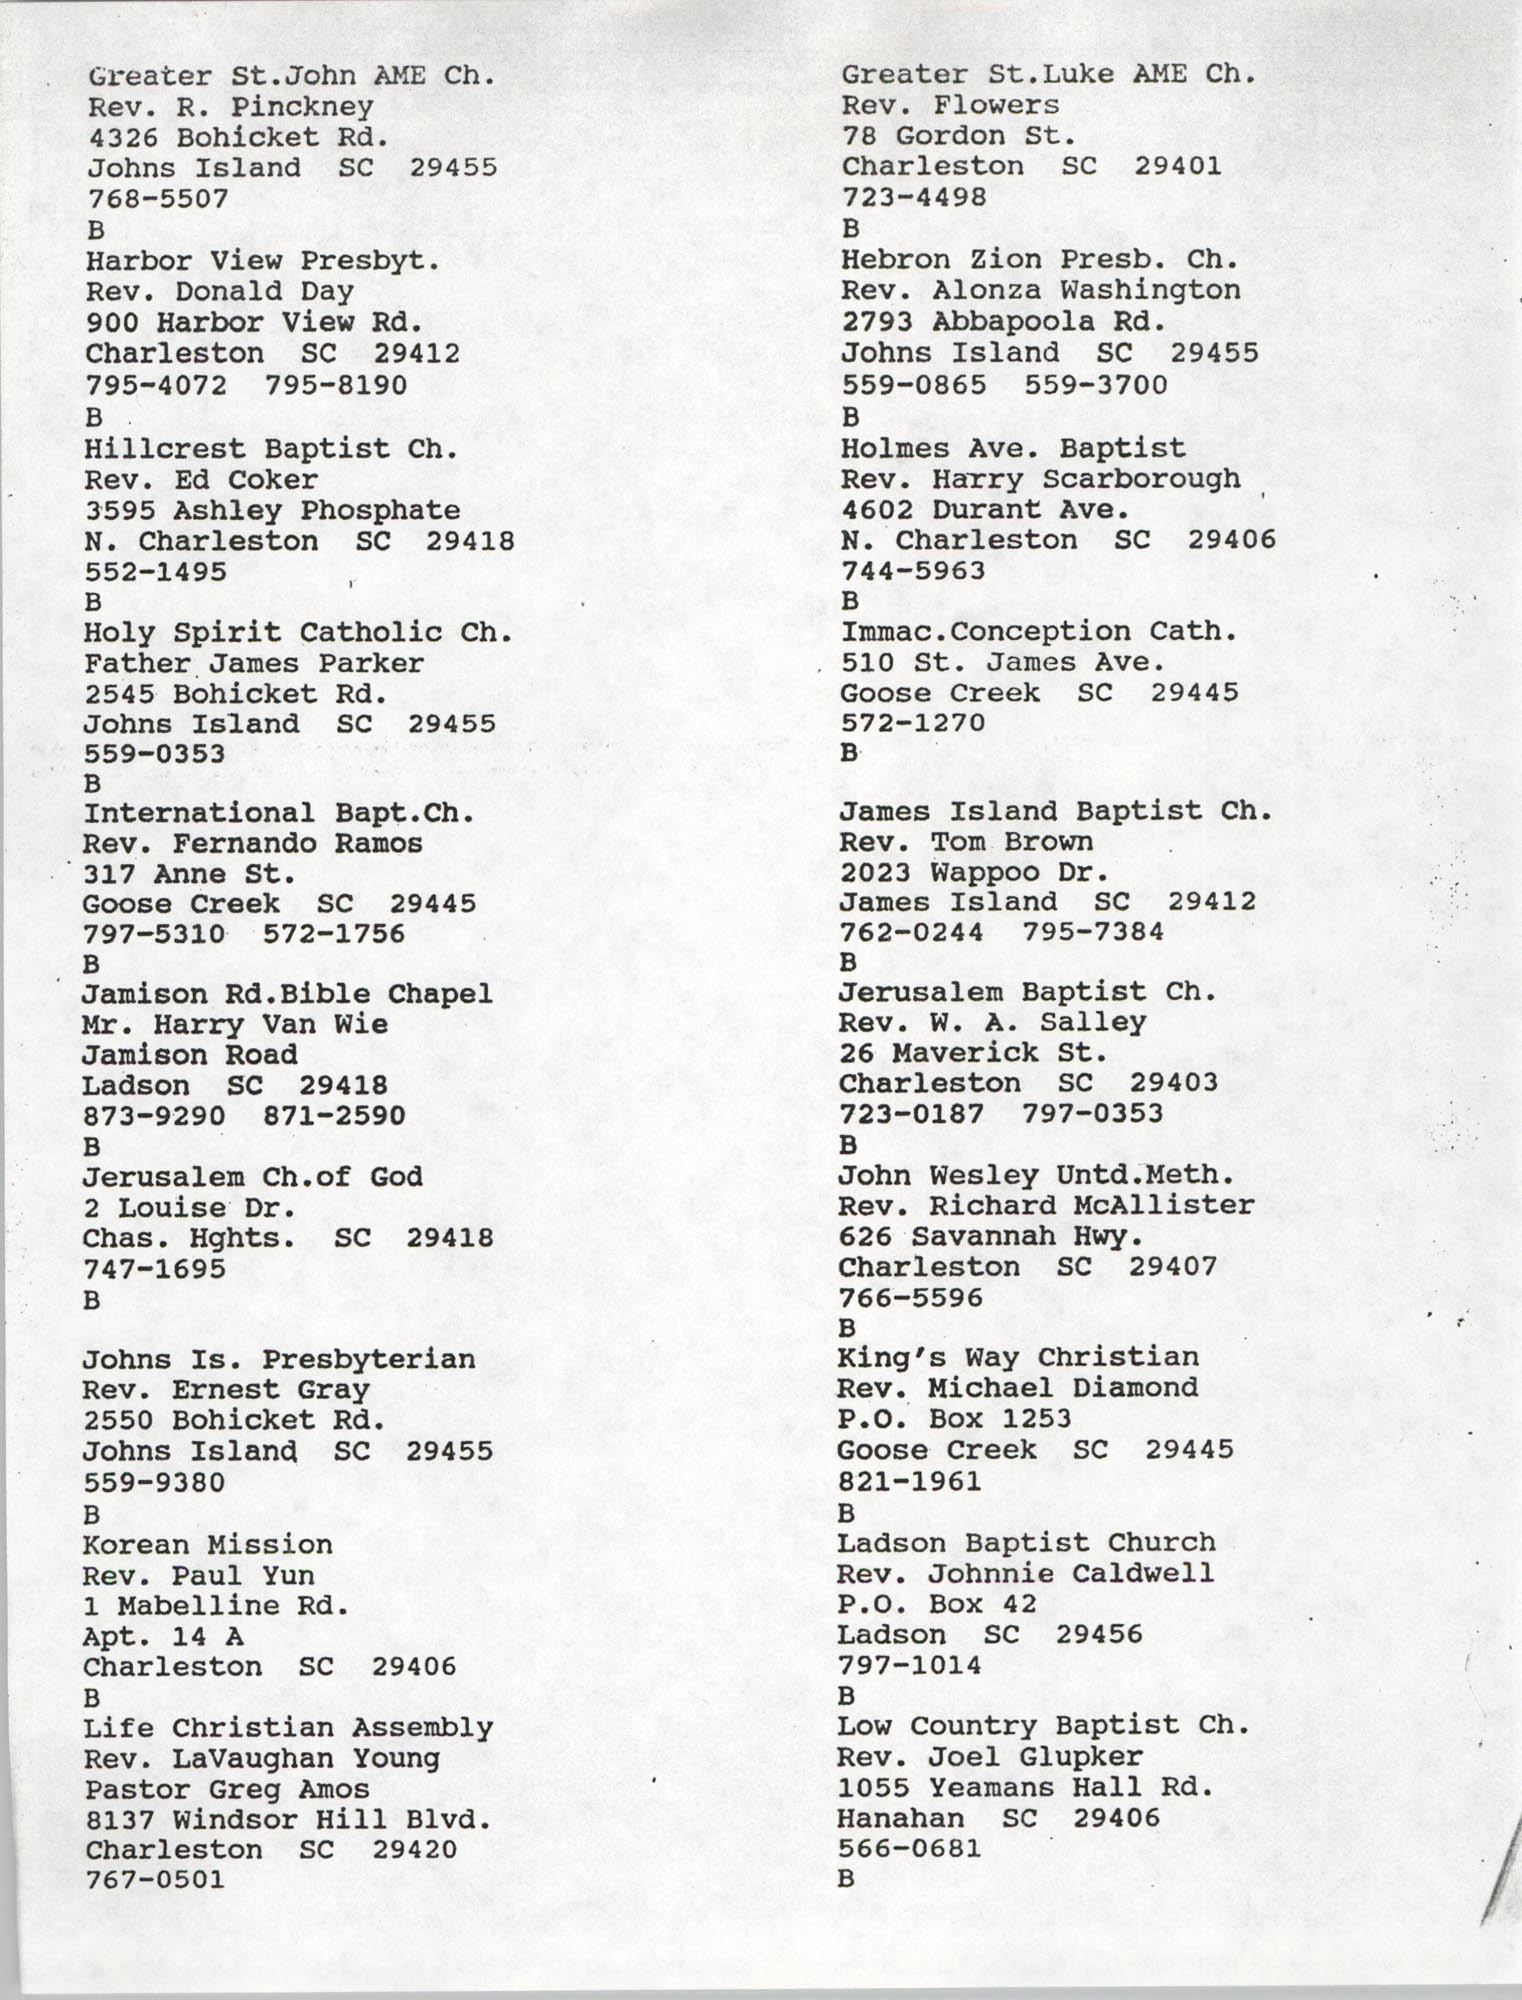 Church Contact List, Charleston Chapter of the NAACP, Page 10